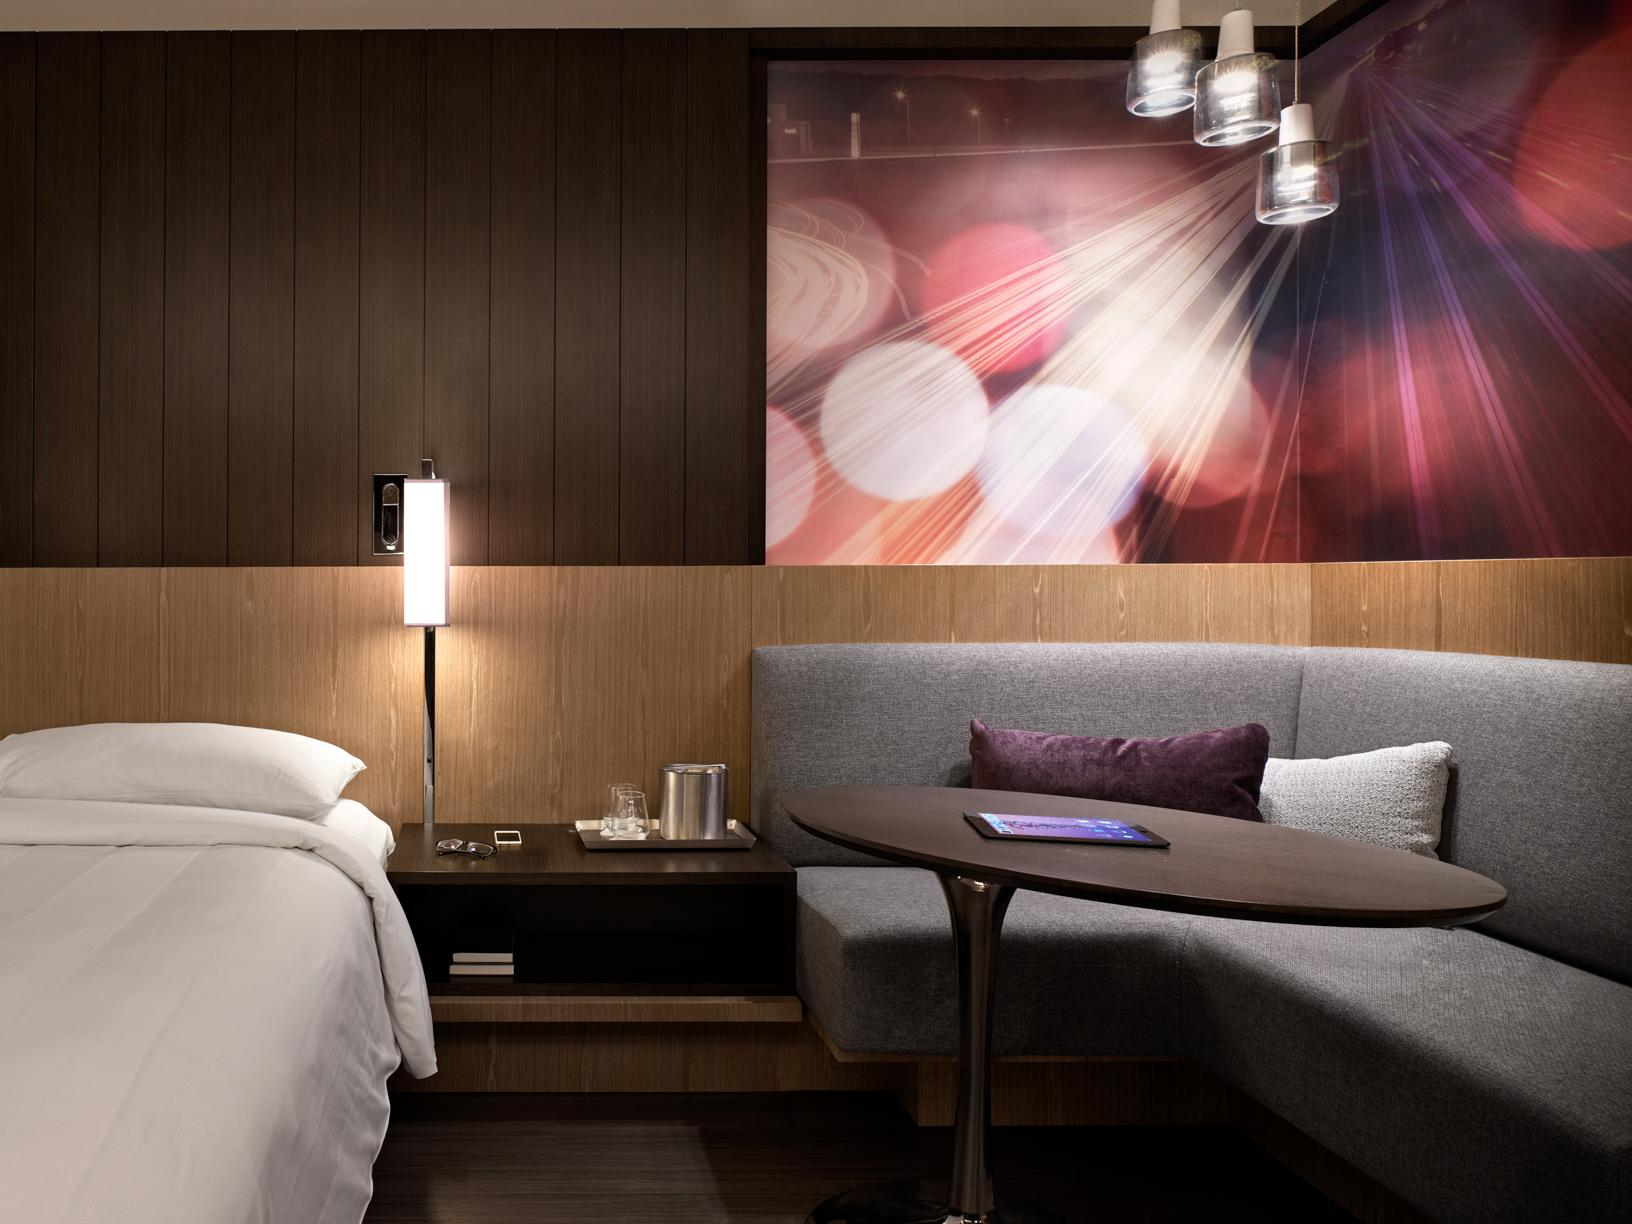 standard hotel suite showing partial bed, wooden nightstand, and adjacent grey corner seating with pink and purple artwork above